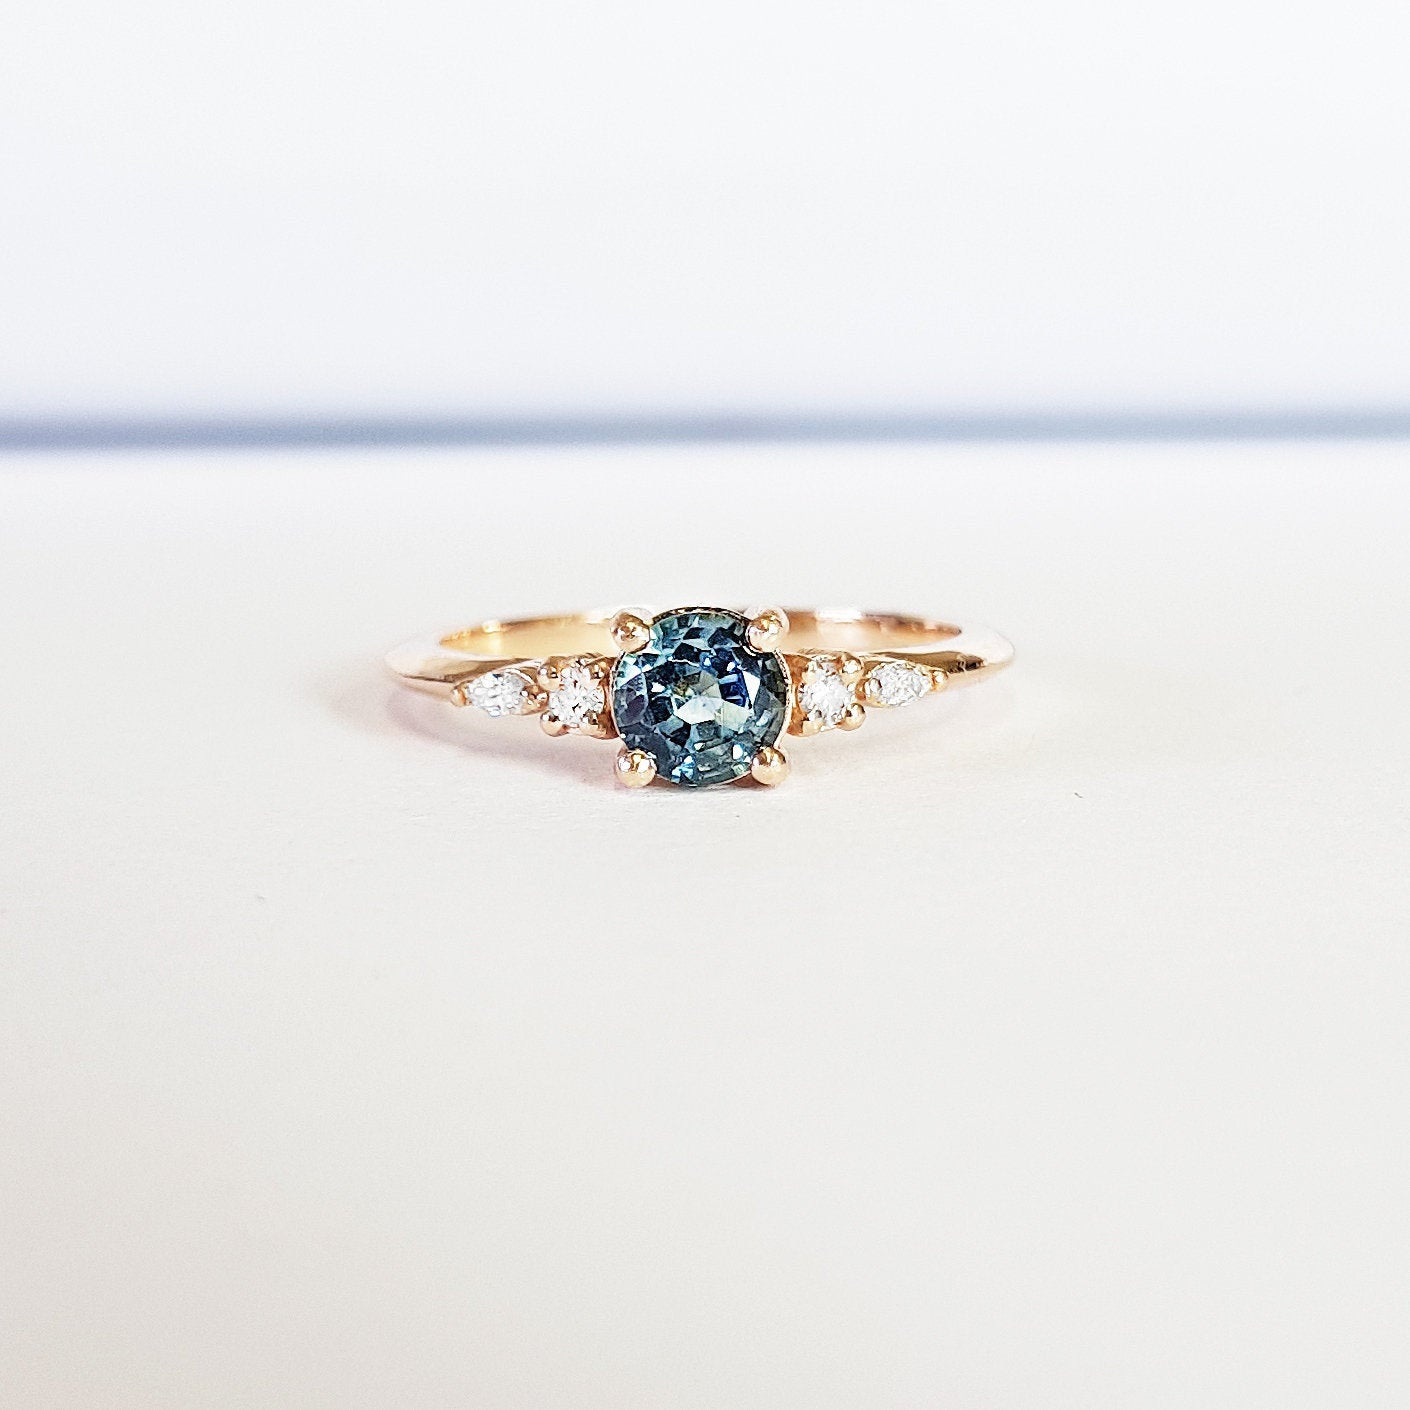 Teal Shire Engagement Ring Handmade